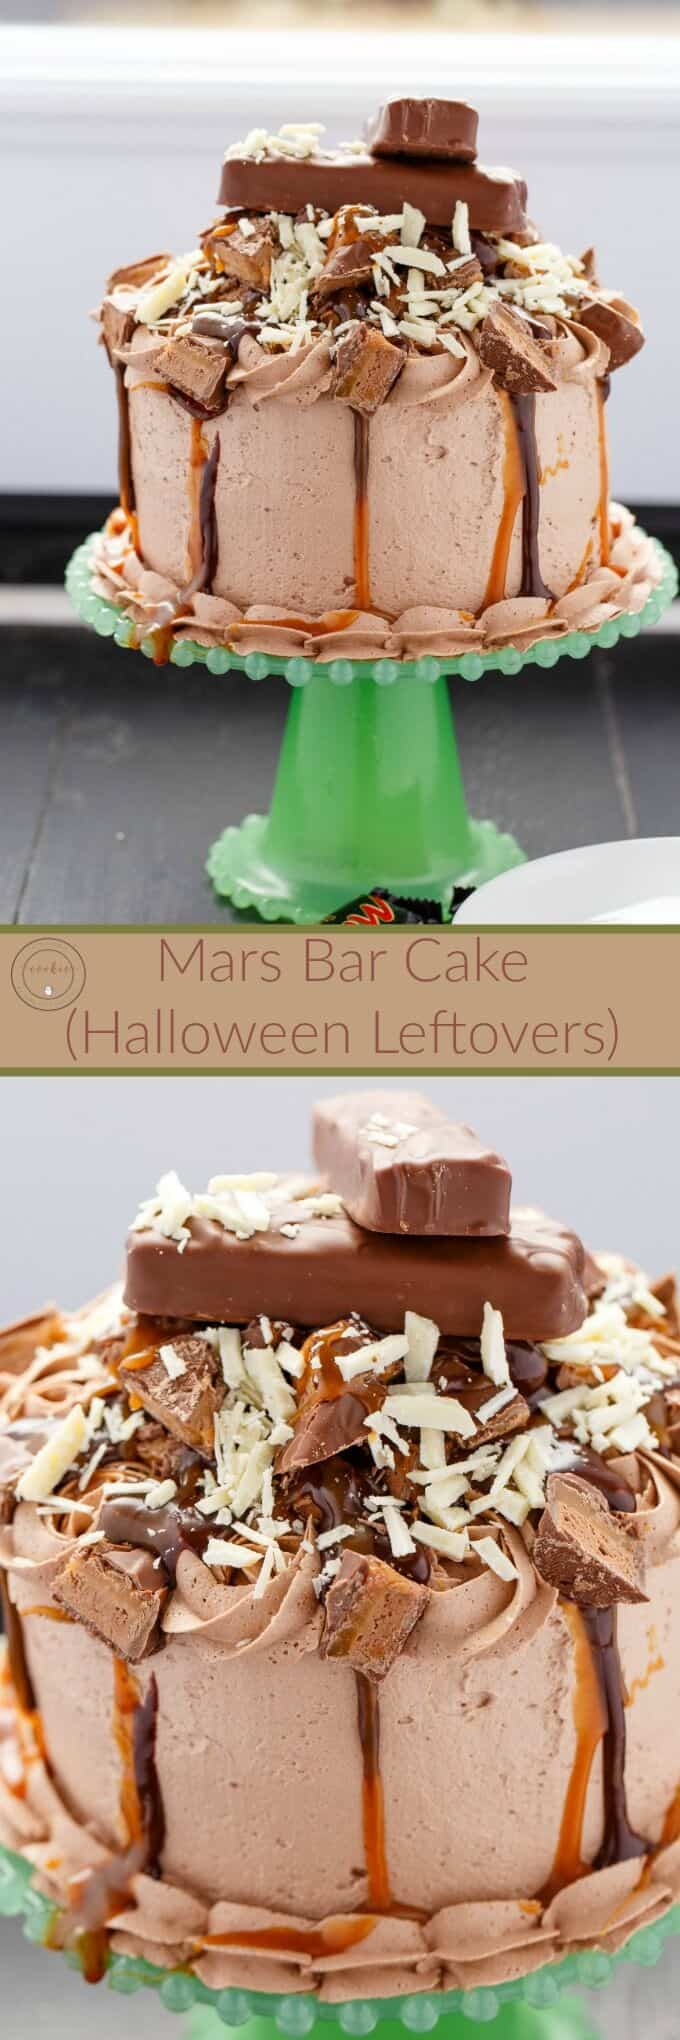 Overloaded Mars Bar Cake (Halloween Leftovers)